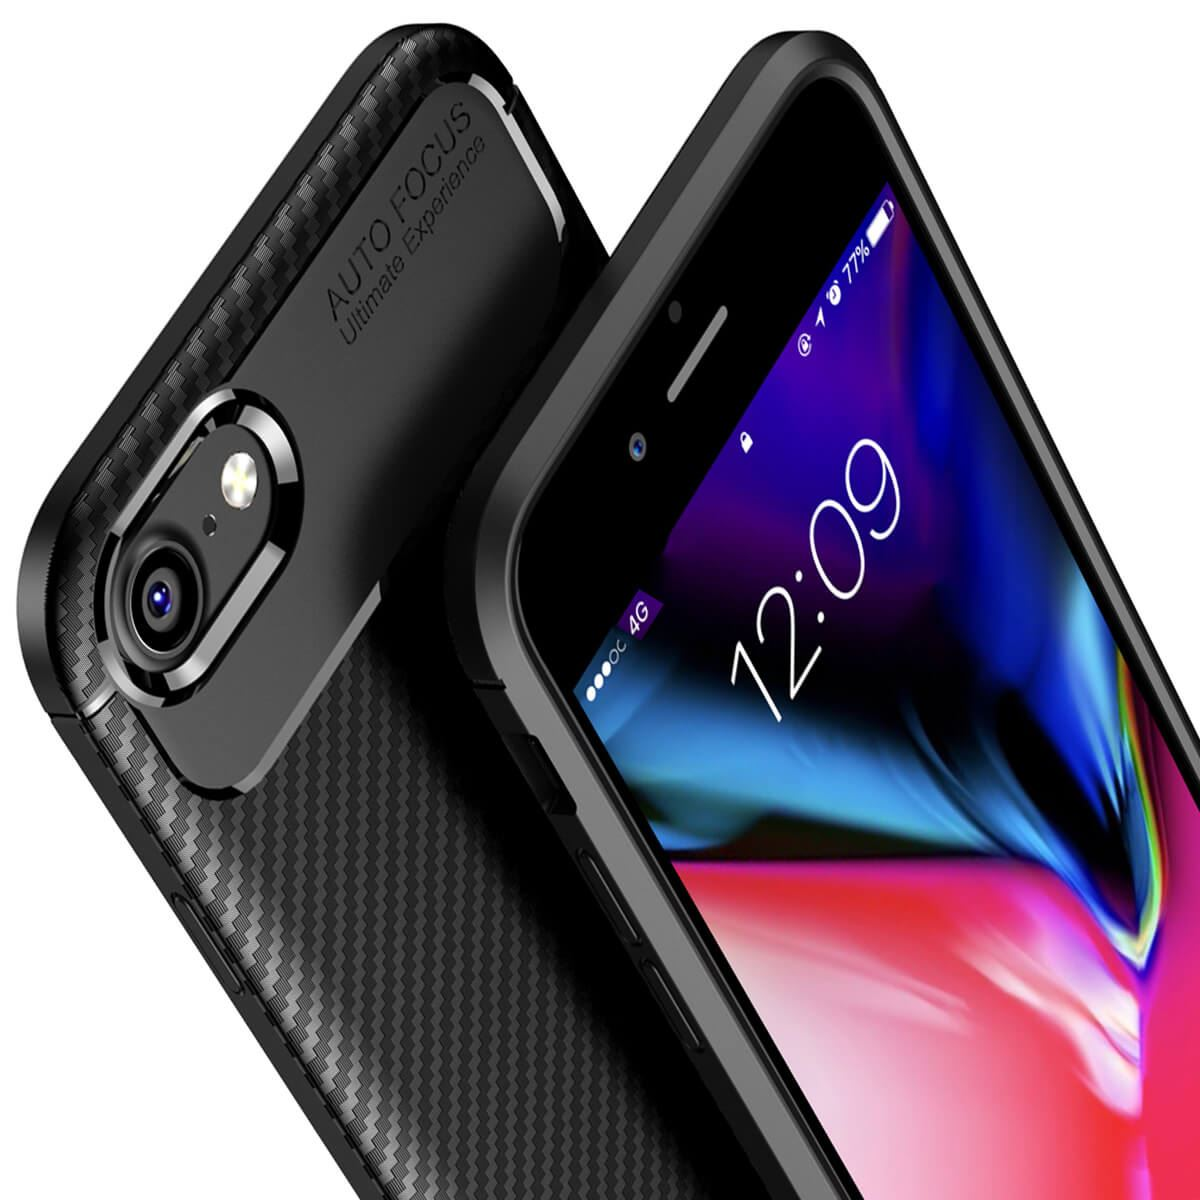 Carbon-Fibre-Soft-Case-For-iPhone-11-X-XR-Max-8-7-6-Plus-Slim-TPU-Silicone-Cover thumbnail 5